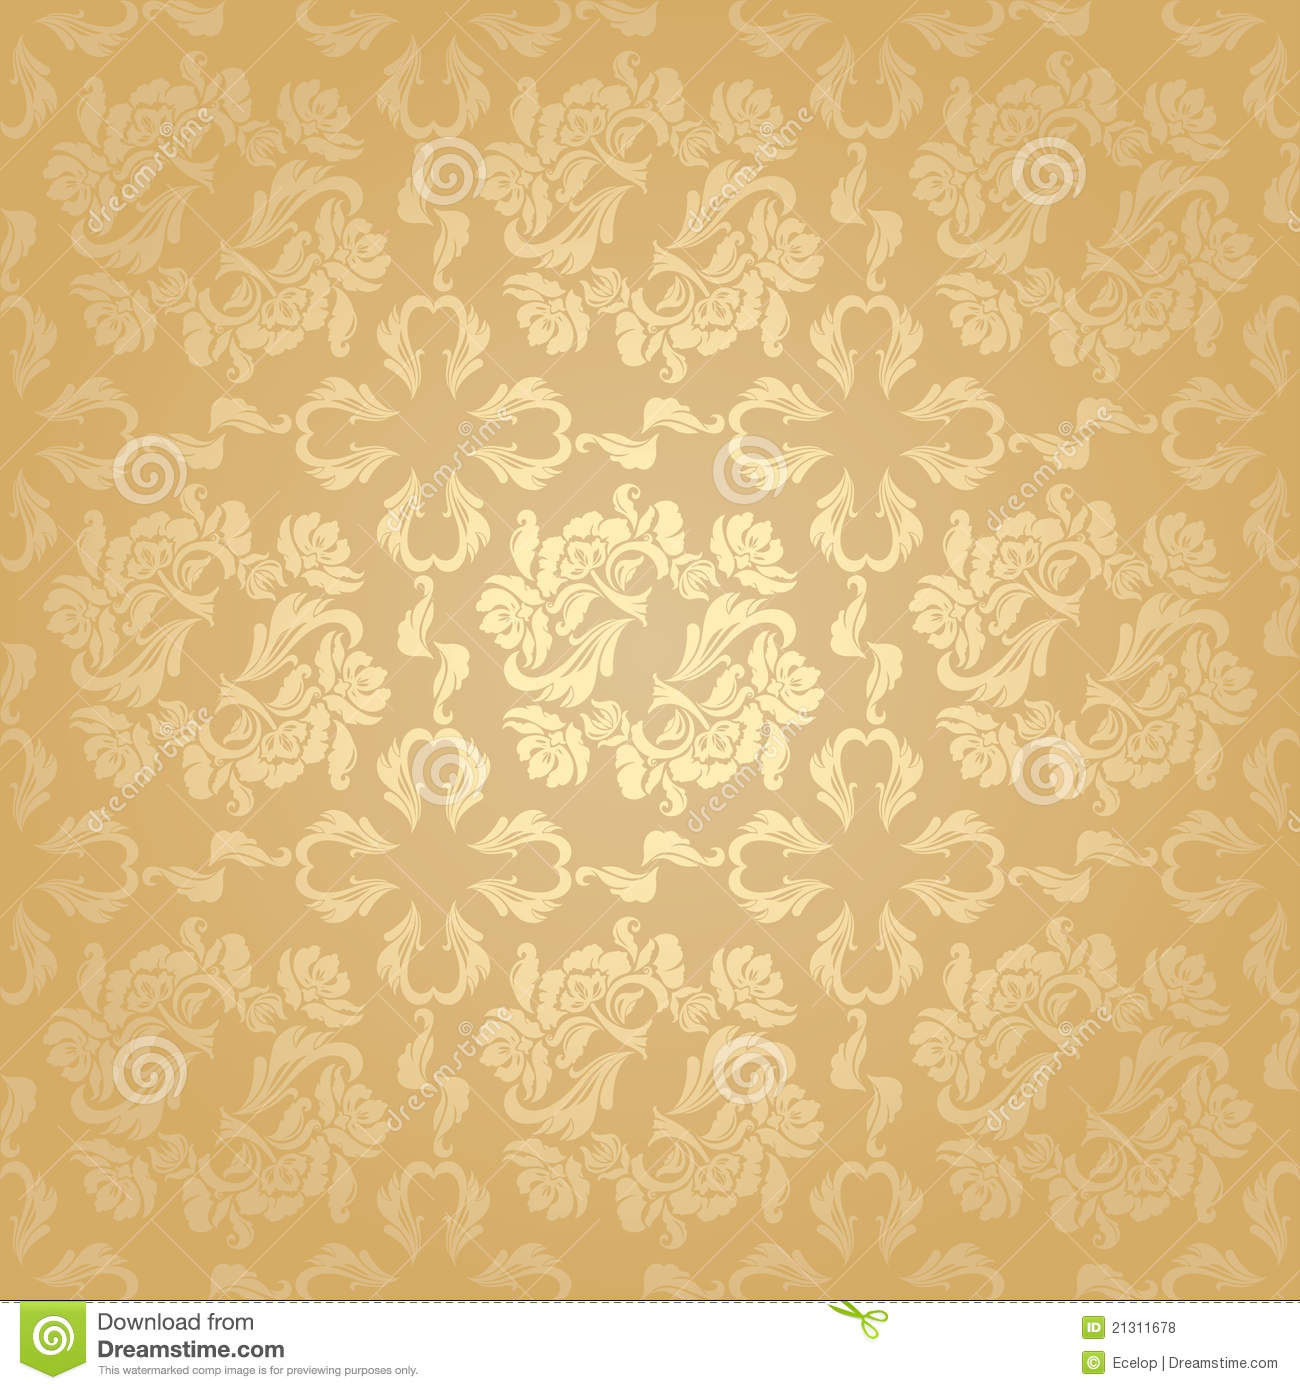 to wear - Flower gold background video